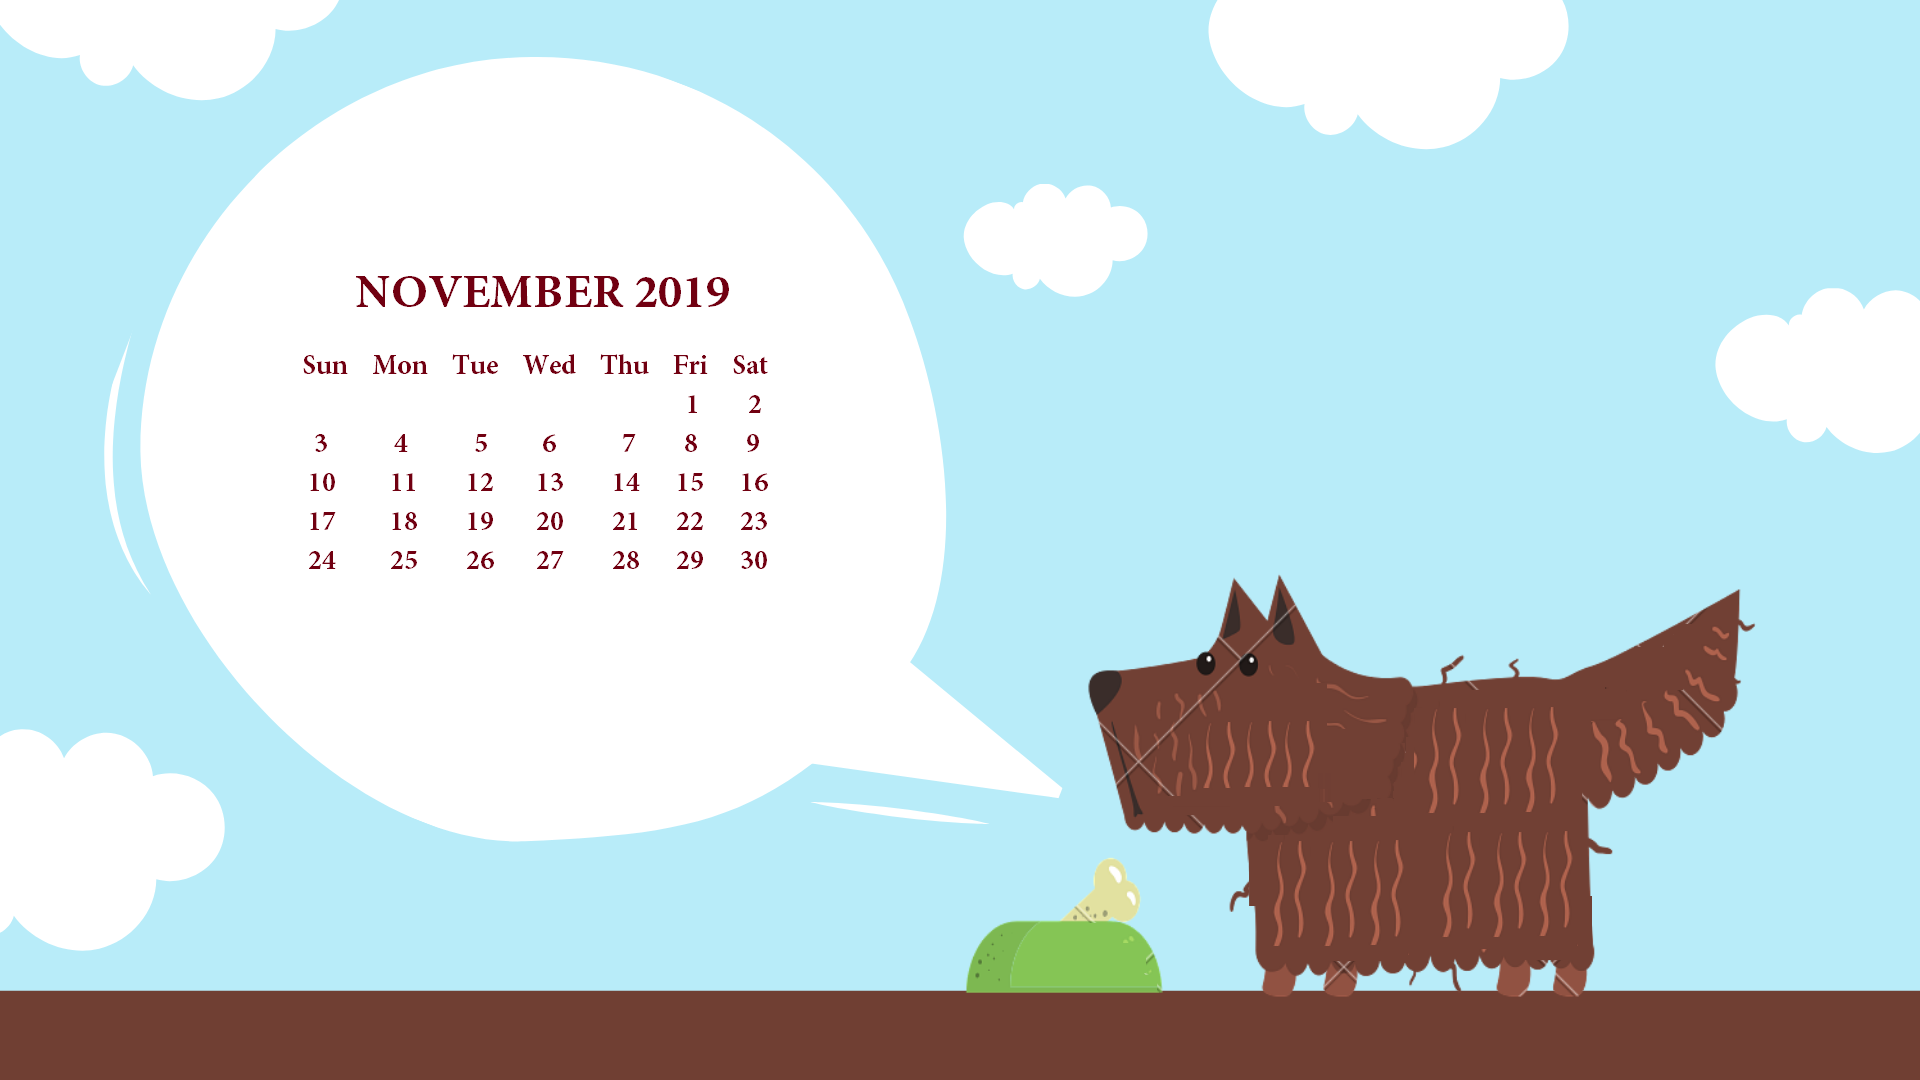 November 2019 Desktop Calendar Wallpaper November Calendars 1920x1080